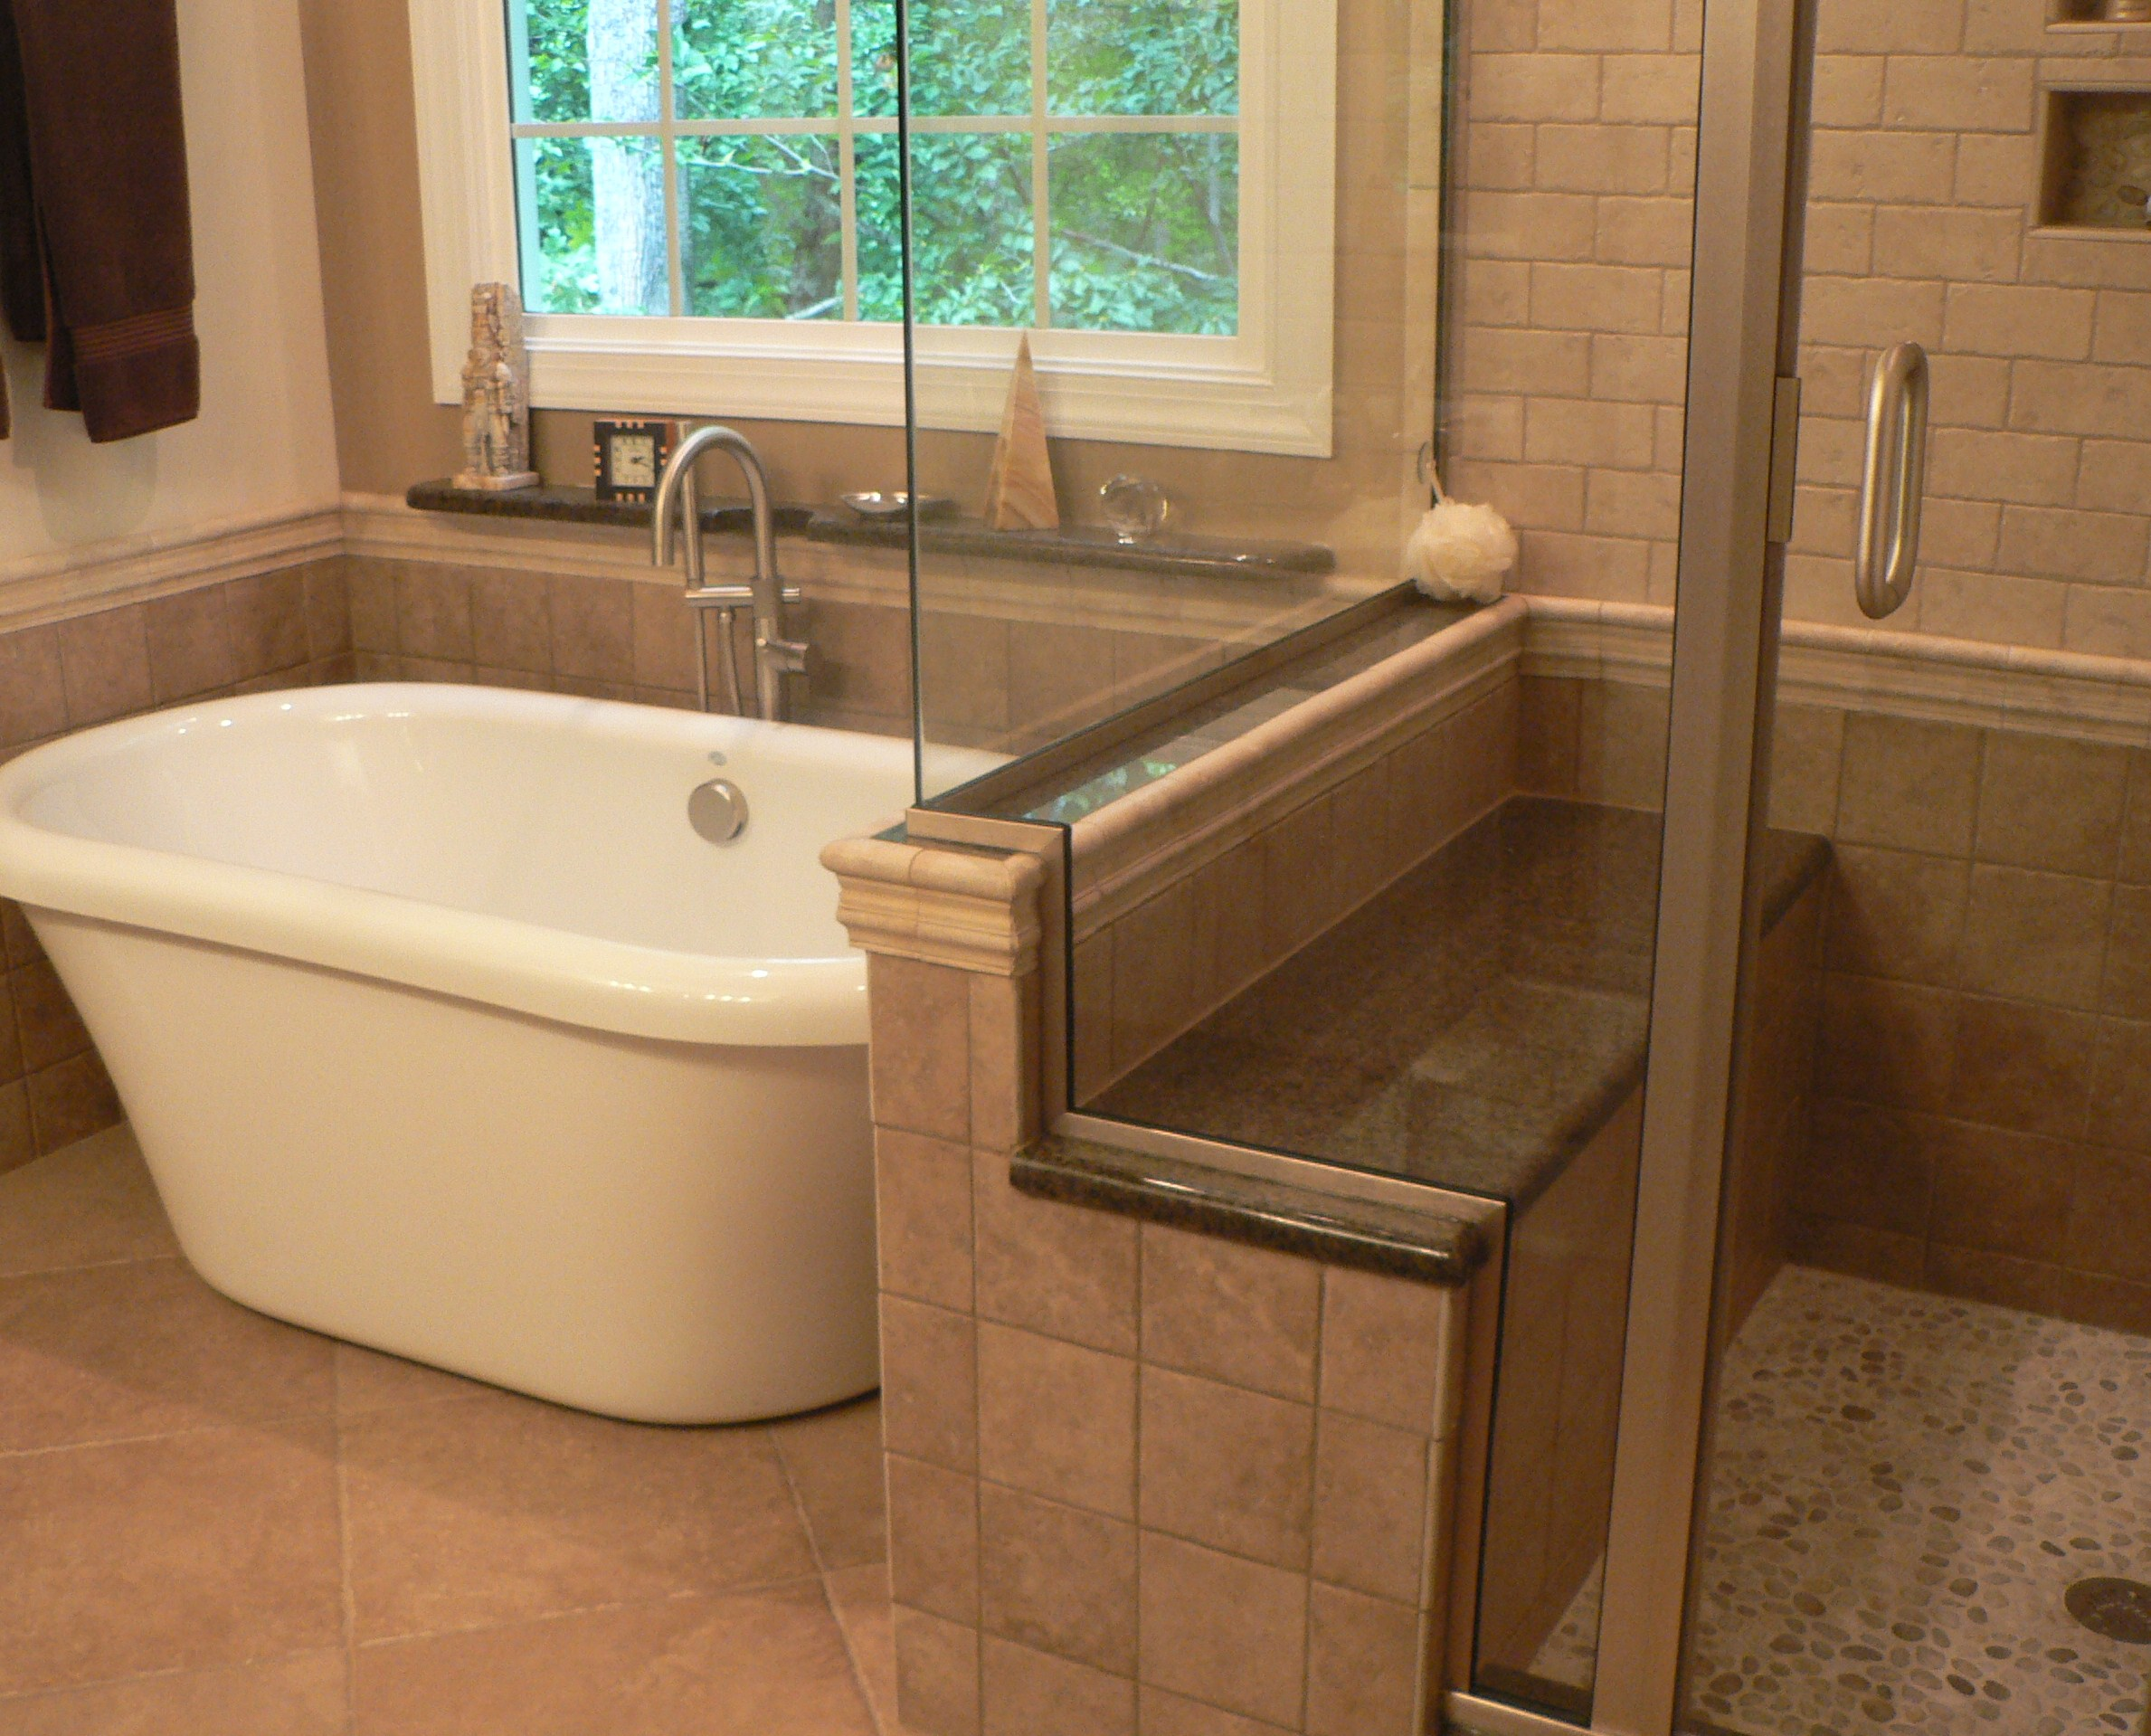 Cost To Remodel A Small Bathroom Large And Beautiful Photos - Bathroom renovation price for small bathroom ideas